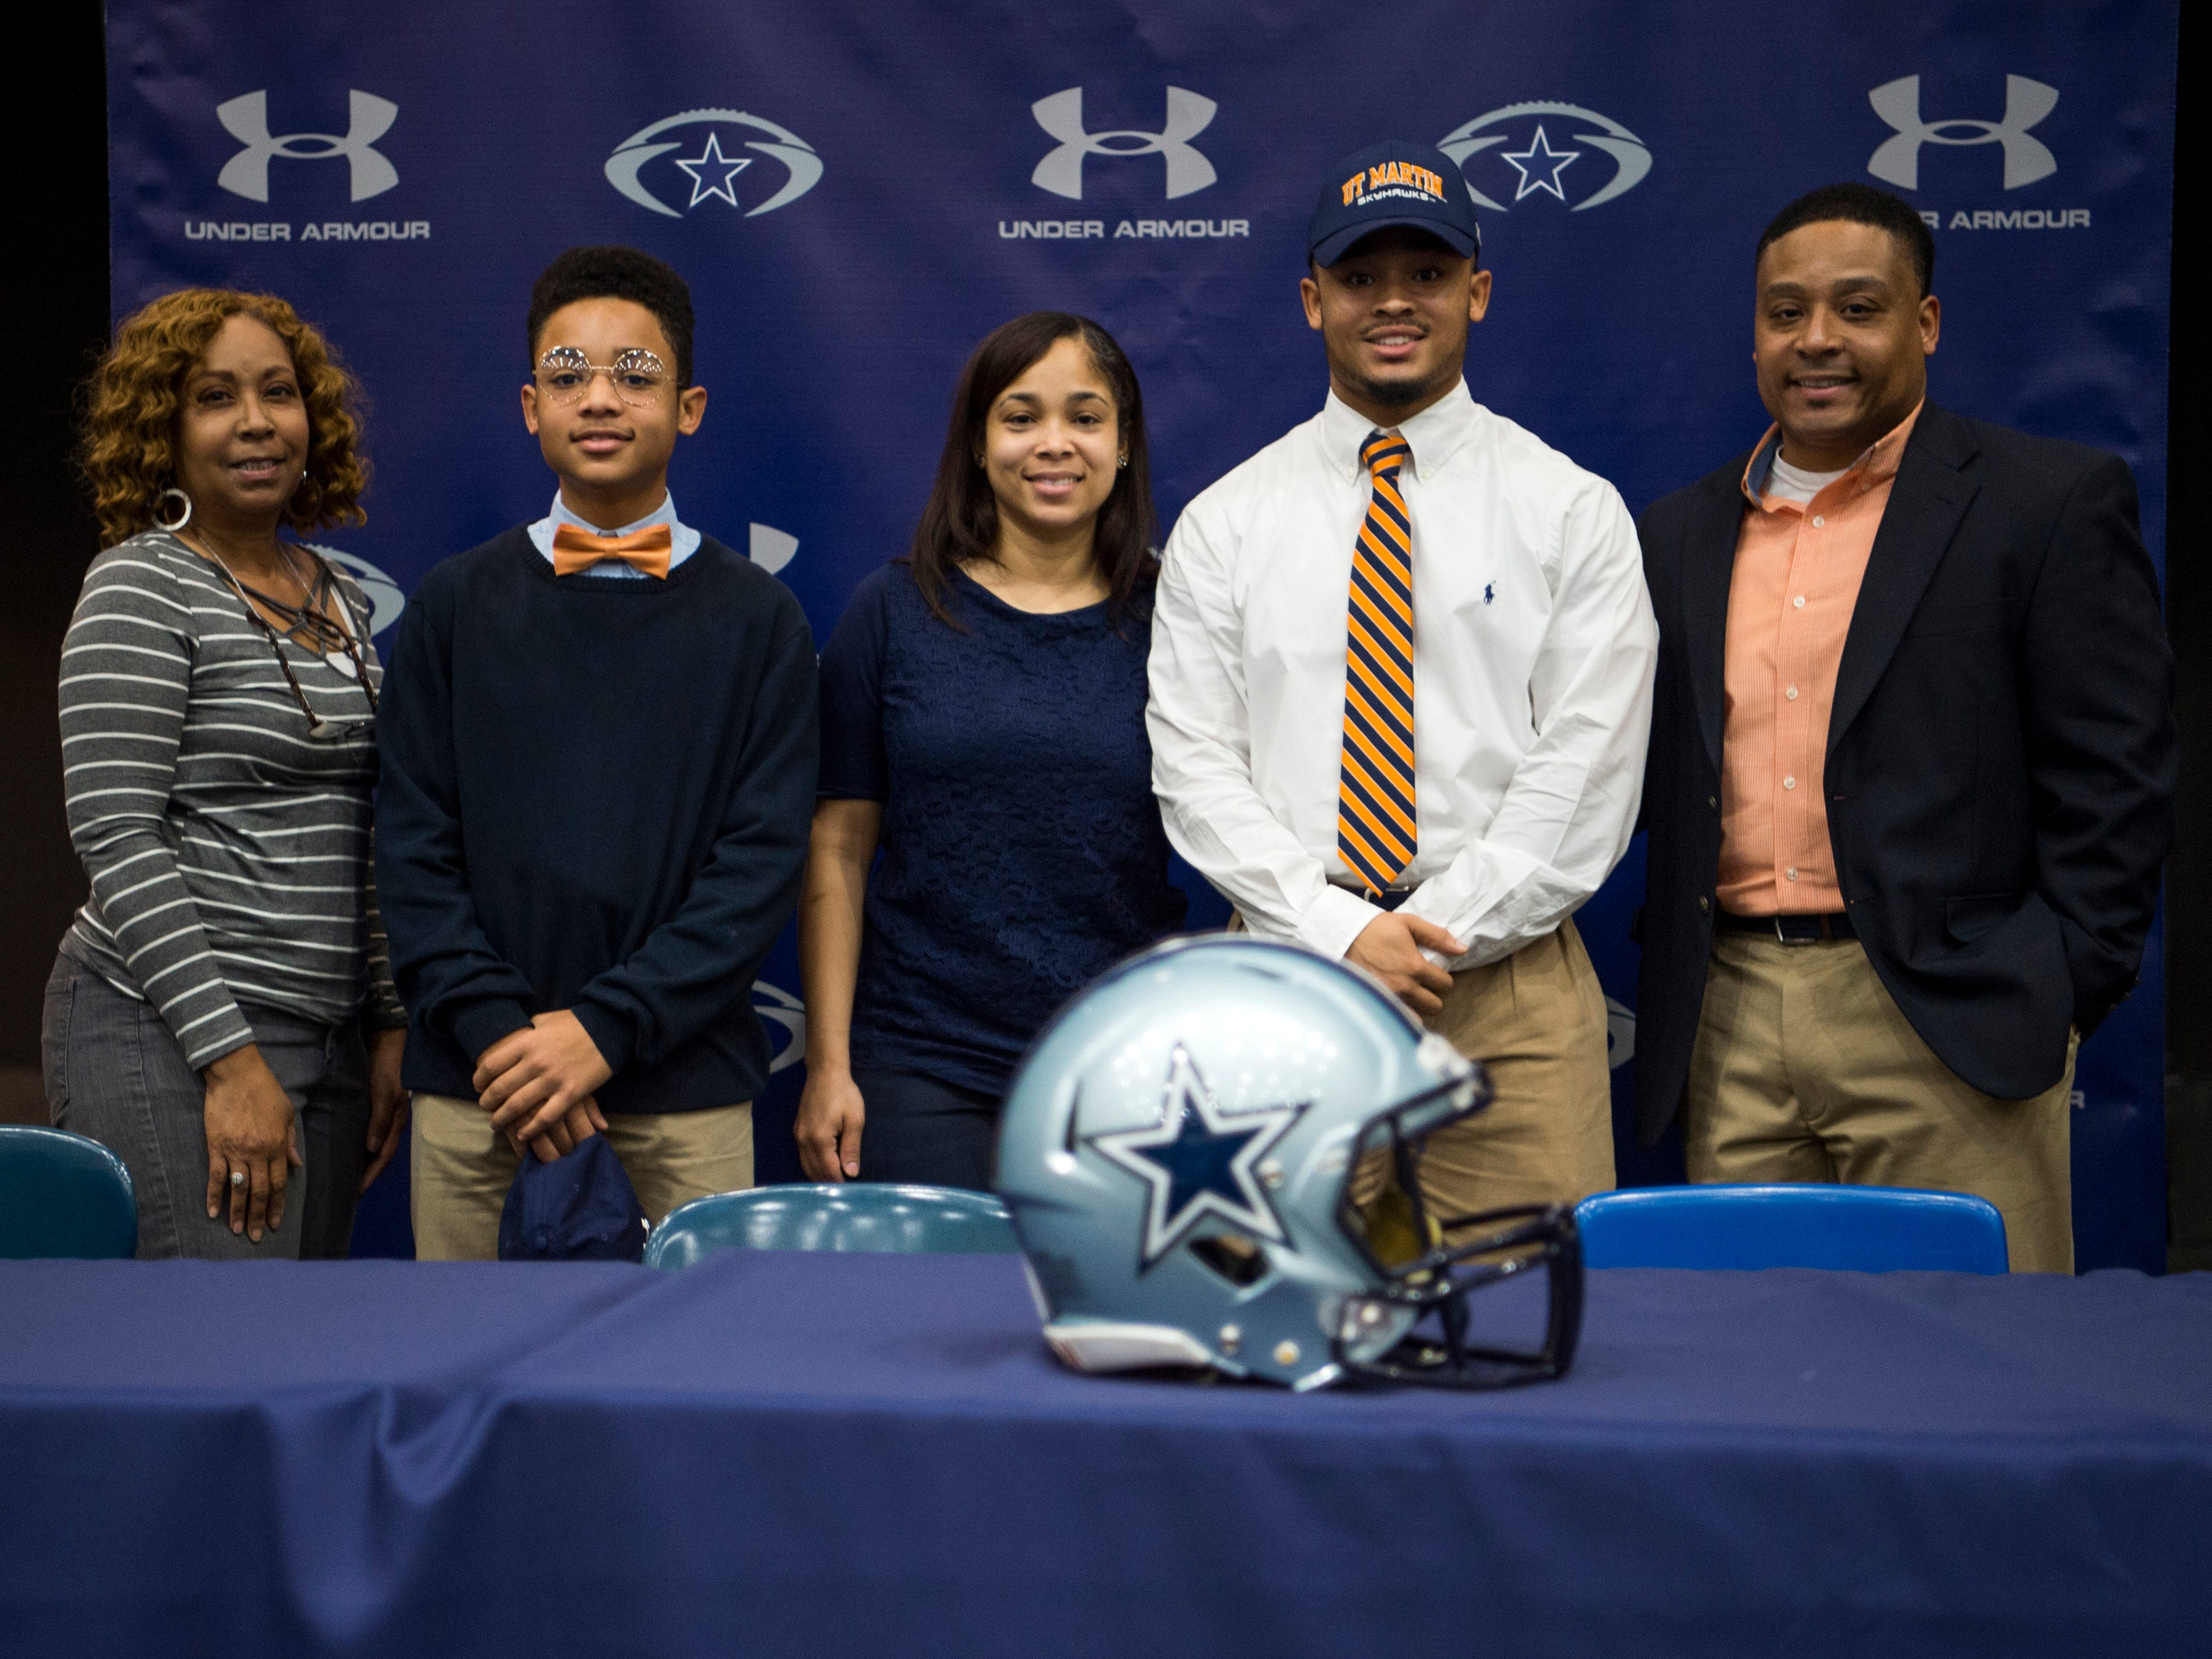 Farragut football player Isiah Gibbs during a National Signing Day event at Farragut High's auditorium on Wednesday, February 6, 2019.